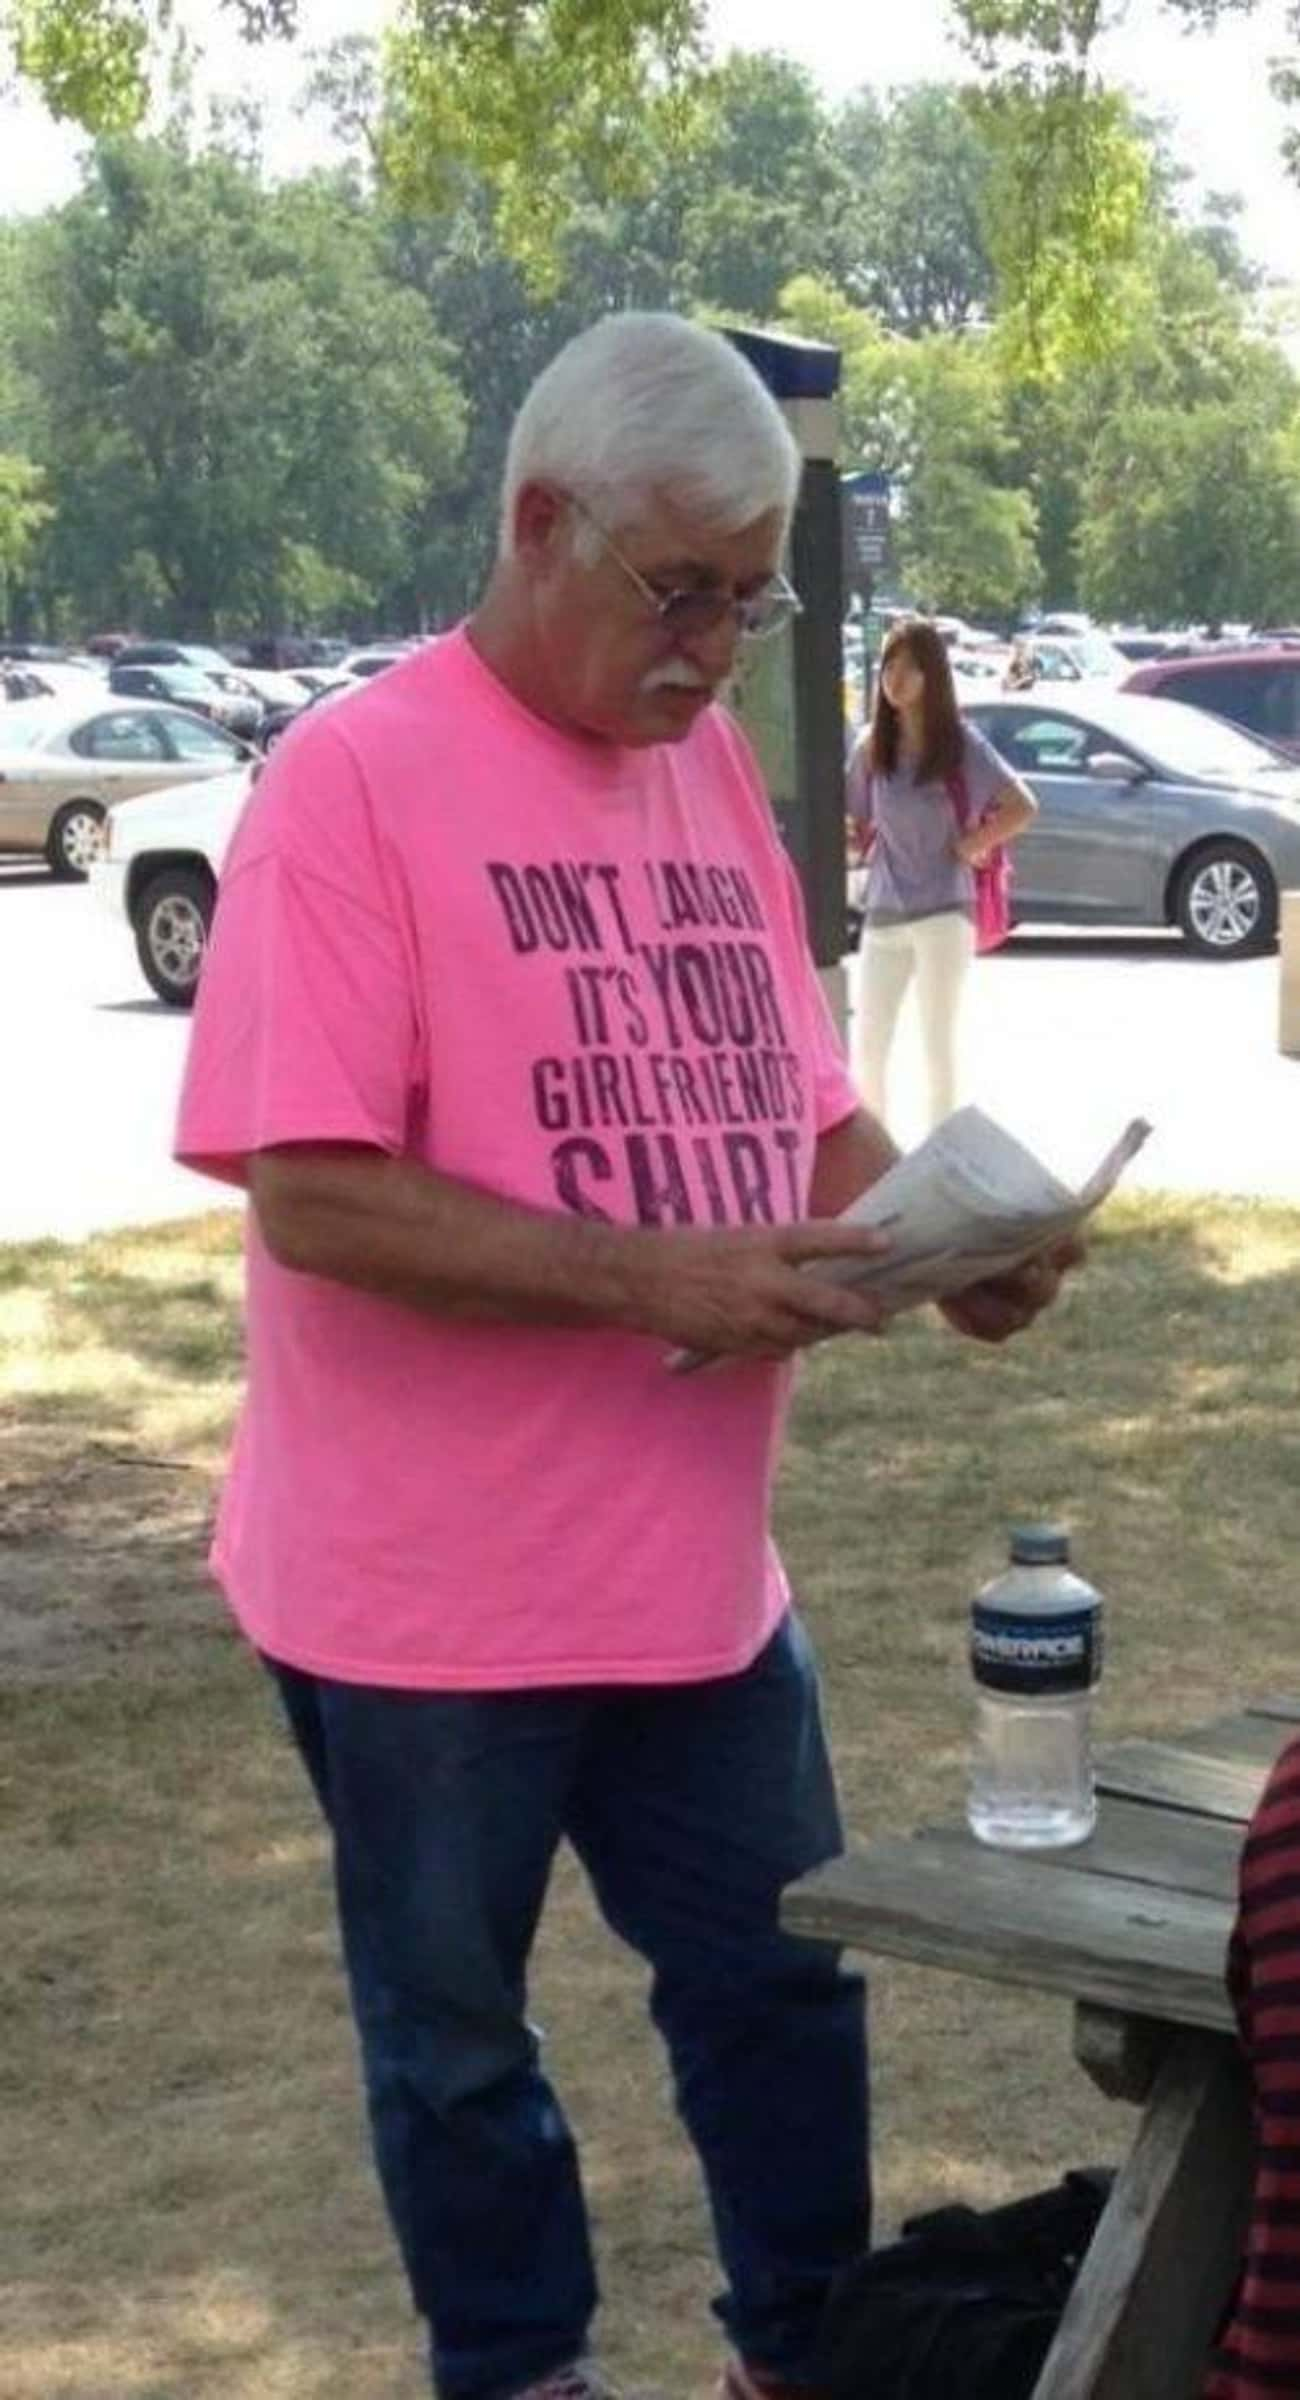 This Guy Who's Enjoying A Stro is listed (or ranked) 2 on the list 15 Amazing Old People Wearing Funny T-Shirts